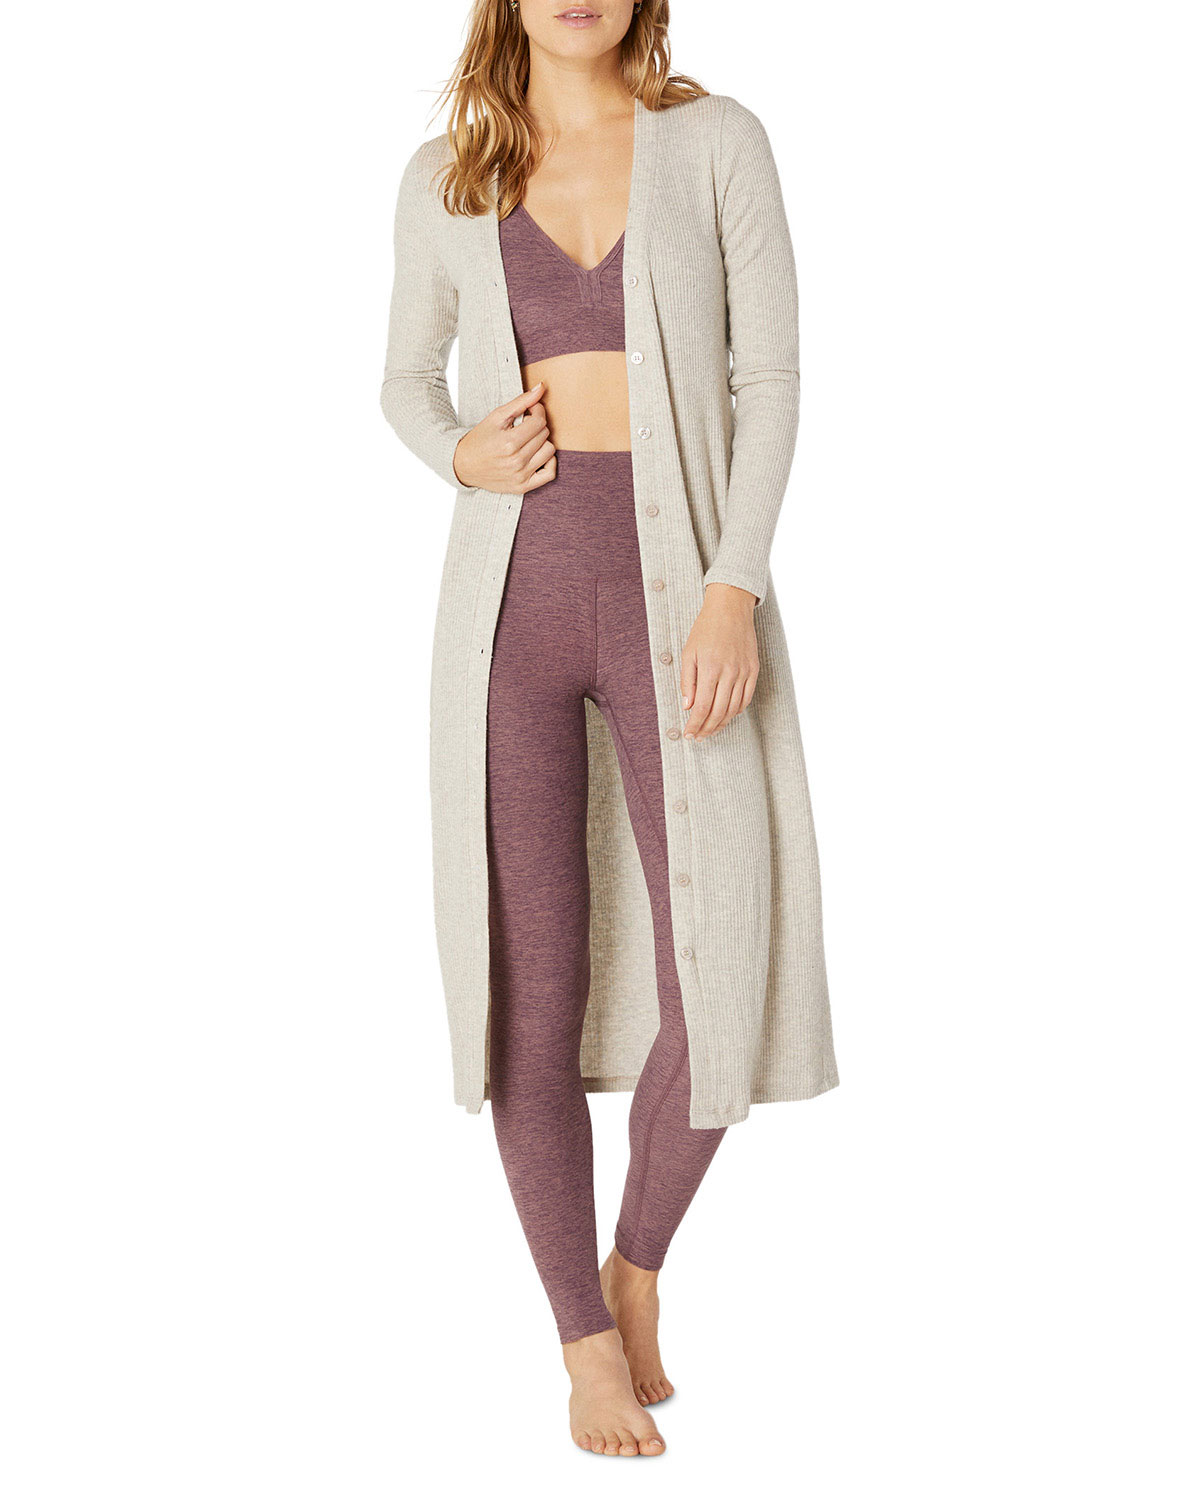 Beyond Yoga Tops YOUR LINE BUTTONED DUSTER CARDIGAN